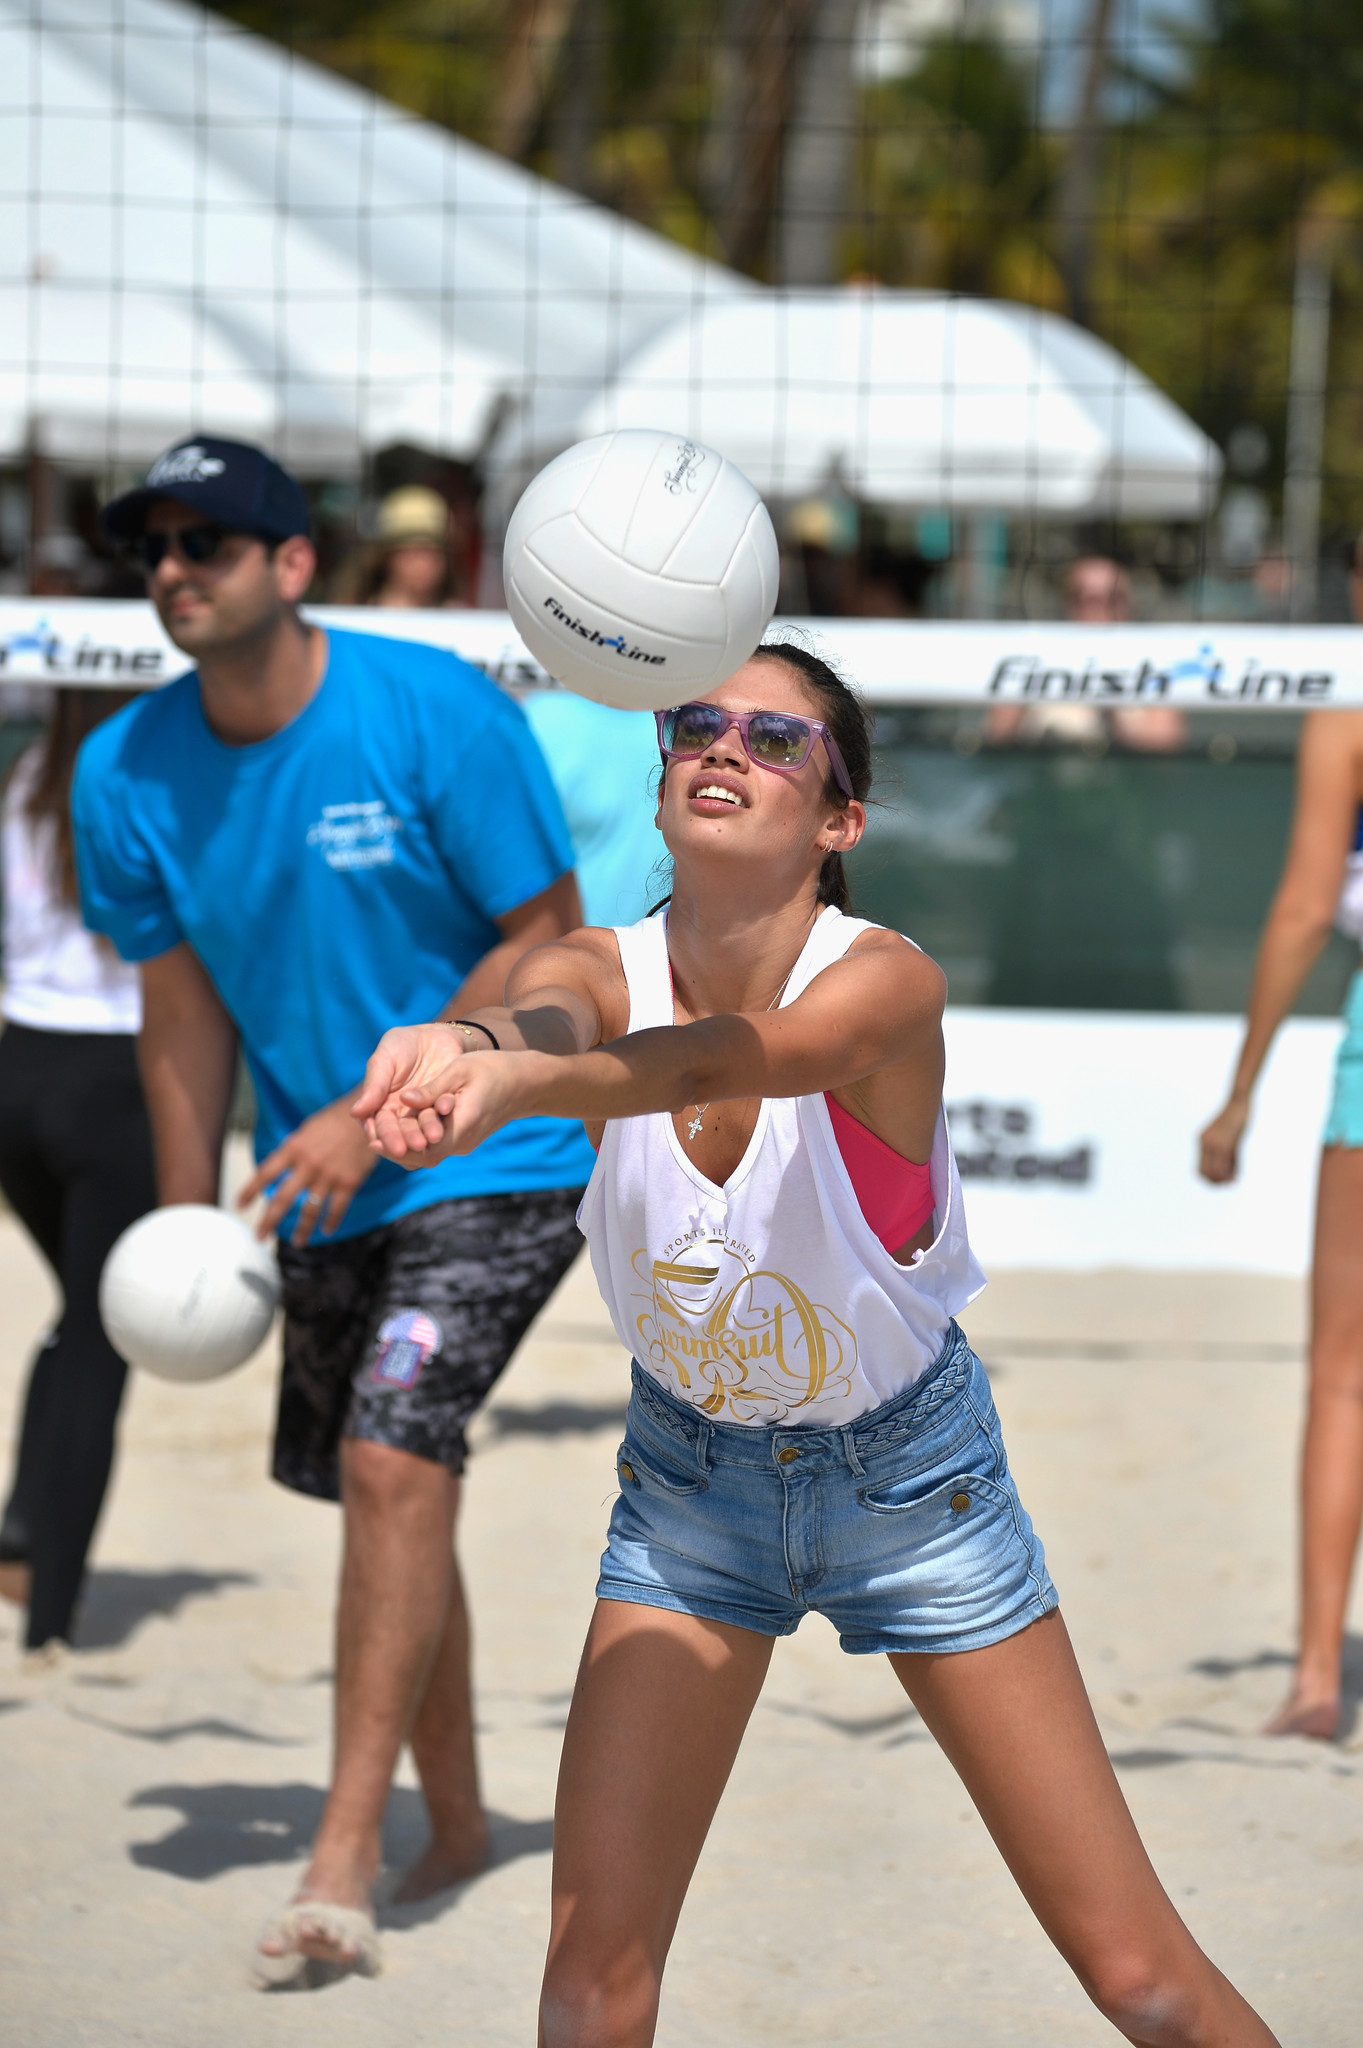 Sports Illustrated Swimsuit 2014 Beach Volleyball - Sports Illustrated Swimsuit Beach Volleyball Tournament on Ocean Drive